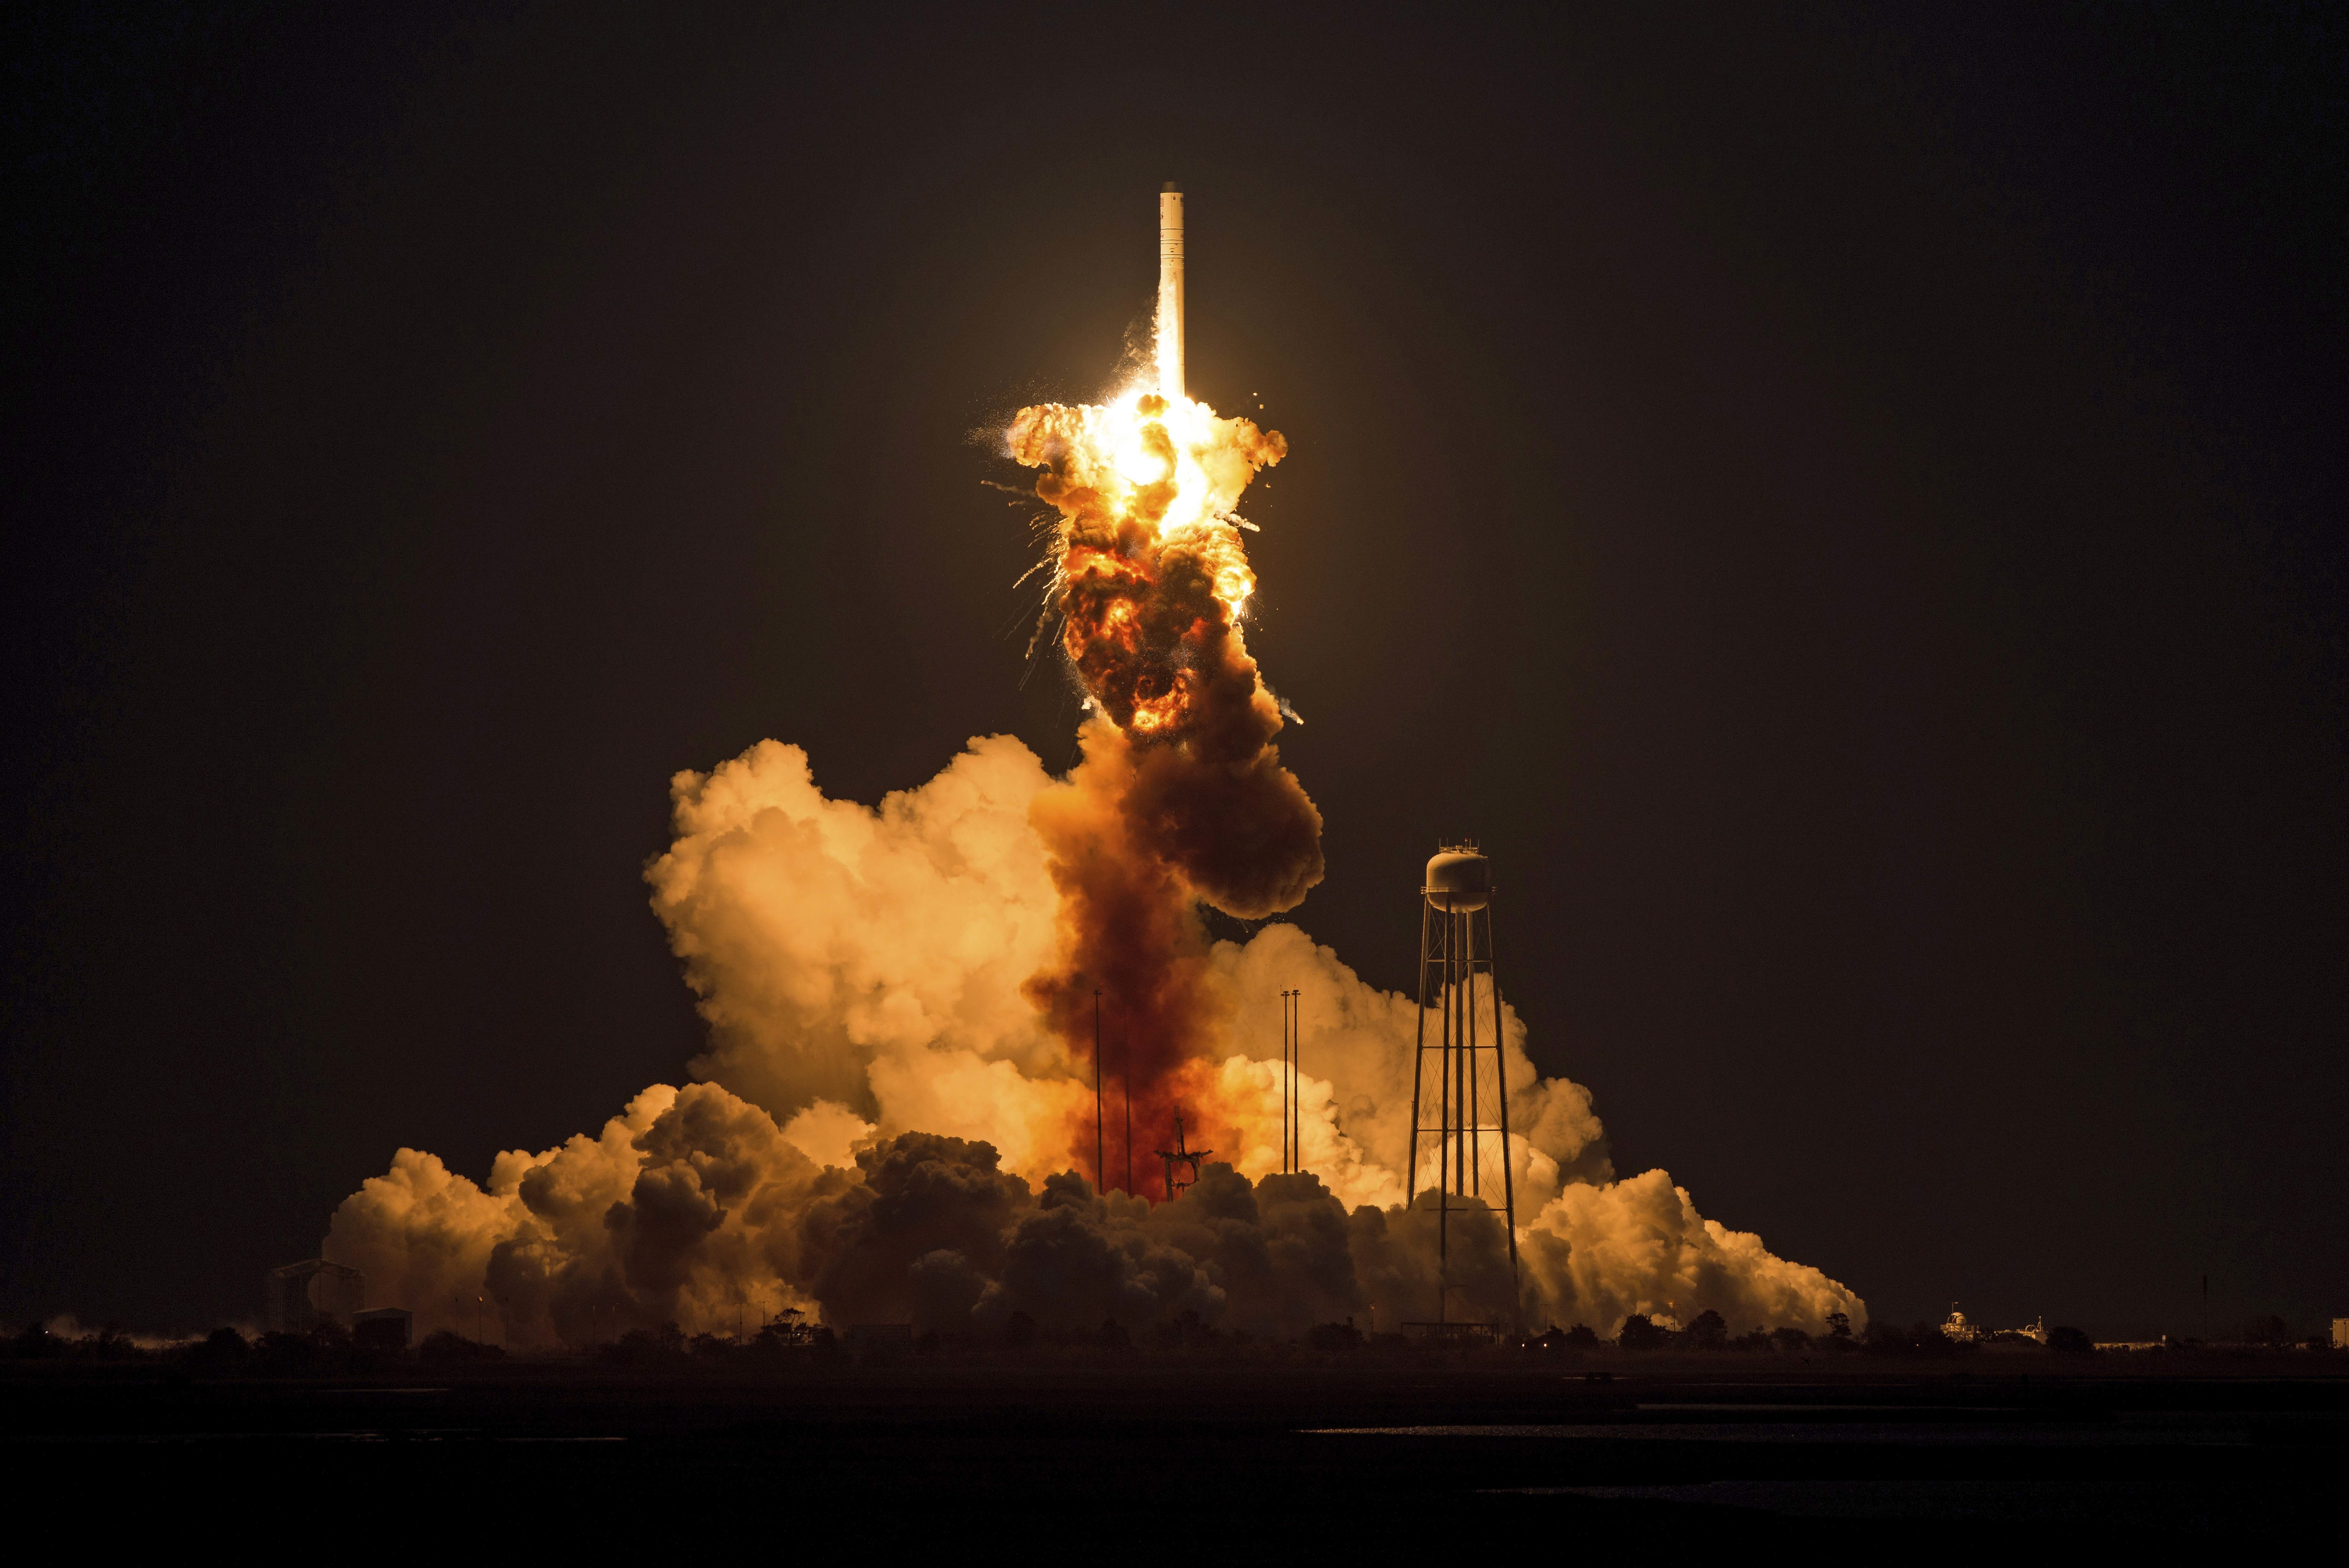 An unmanned Antares rocket explodes seconds after liftoff at NASA's Wallops Flight Facility in Virginia on Tuesday.